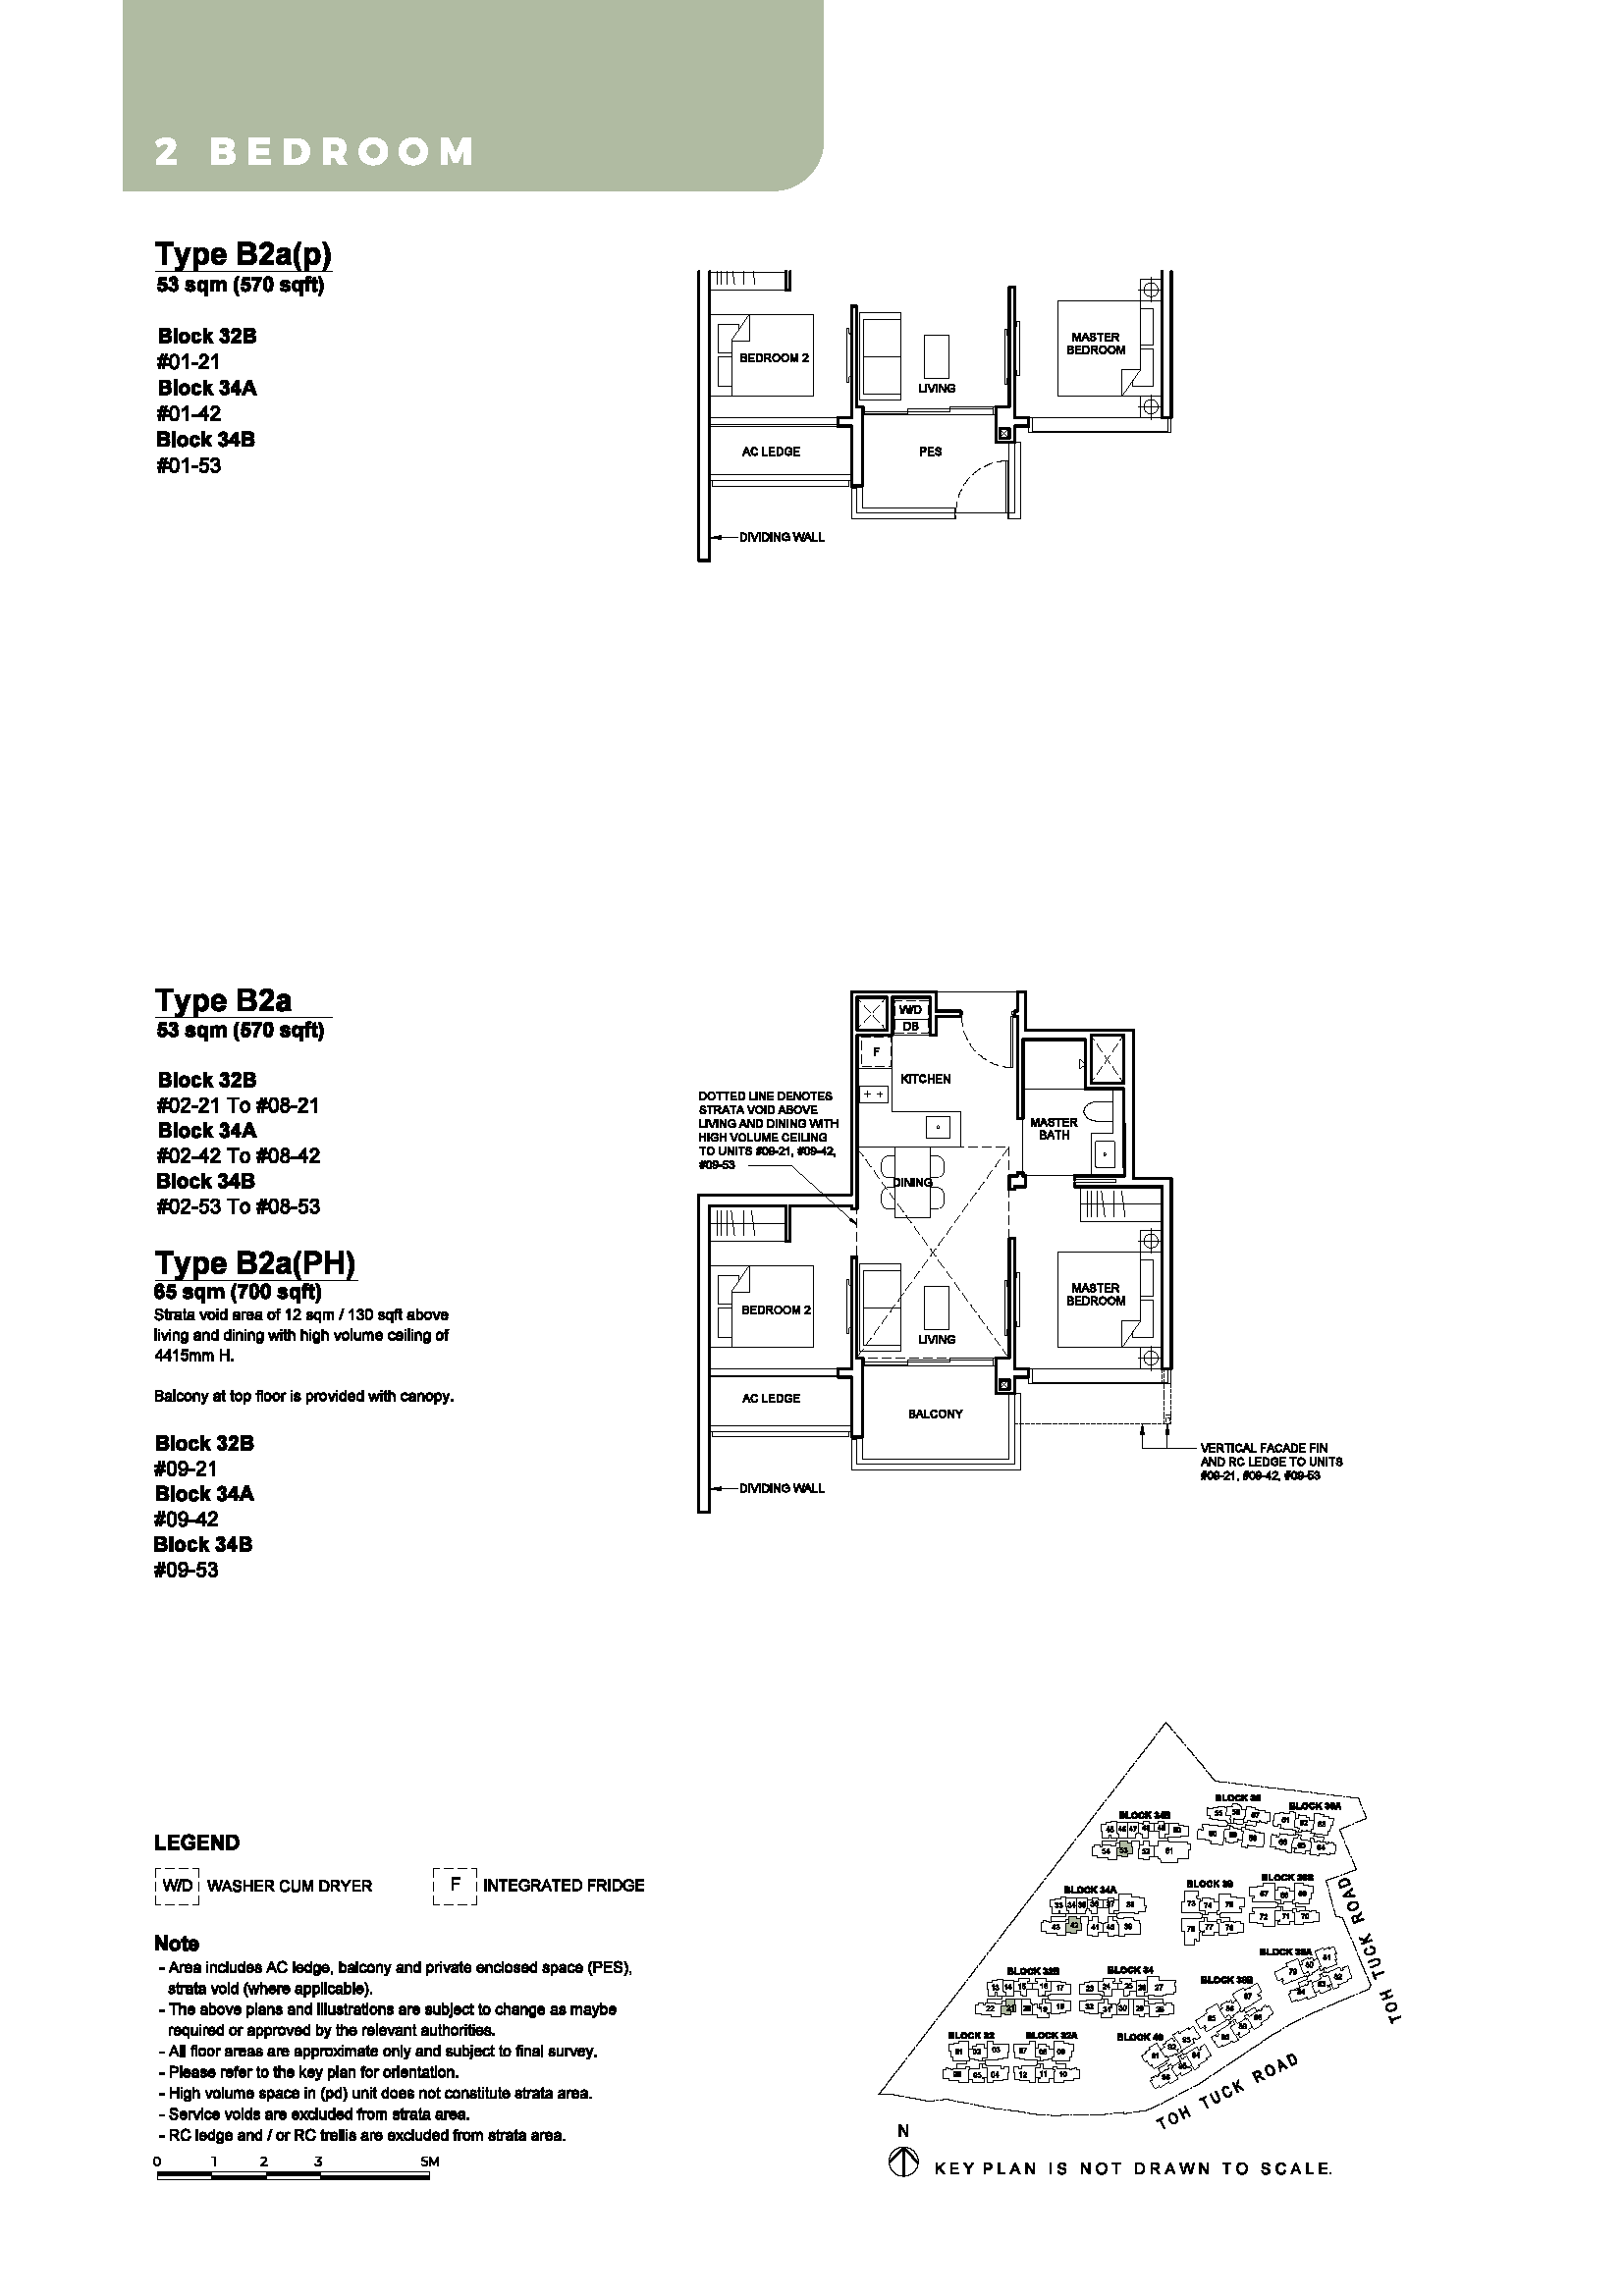 2 Bedroom - Type B2a - B2a(p) - B2a(PH)